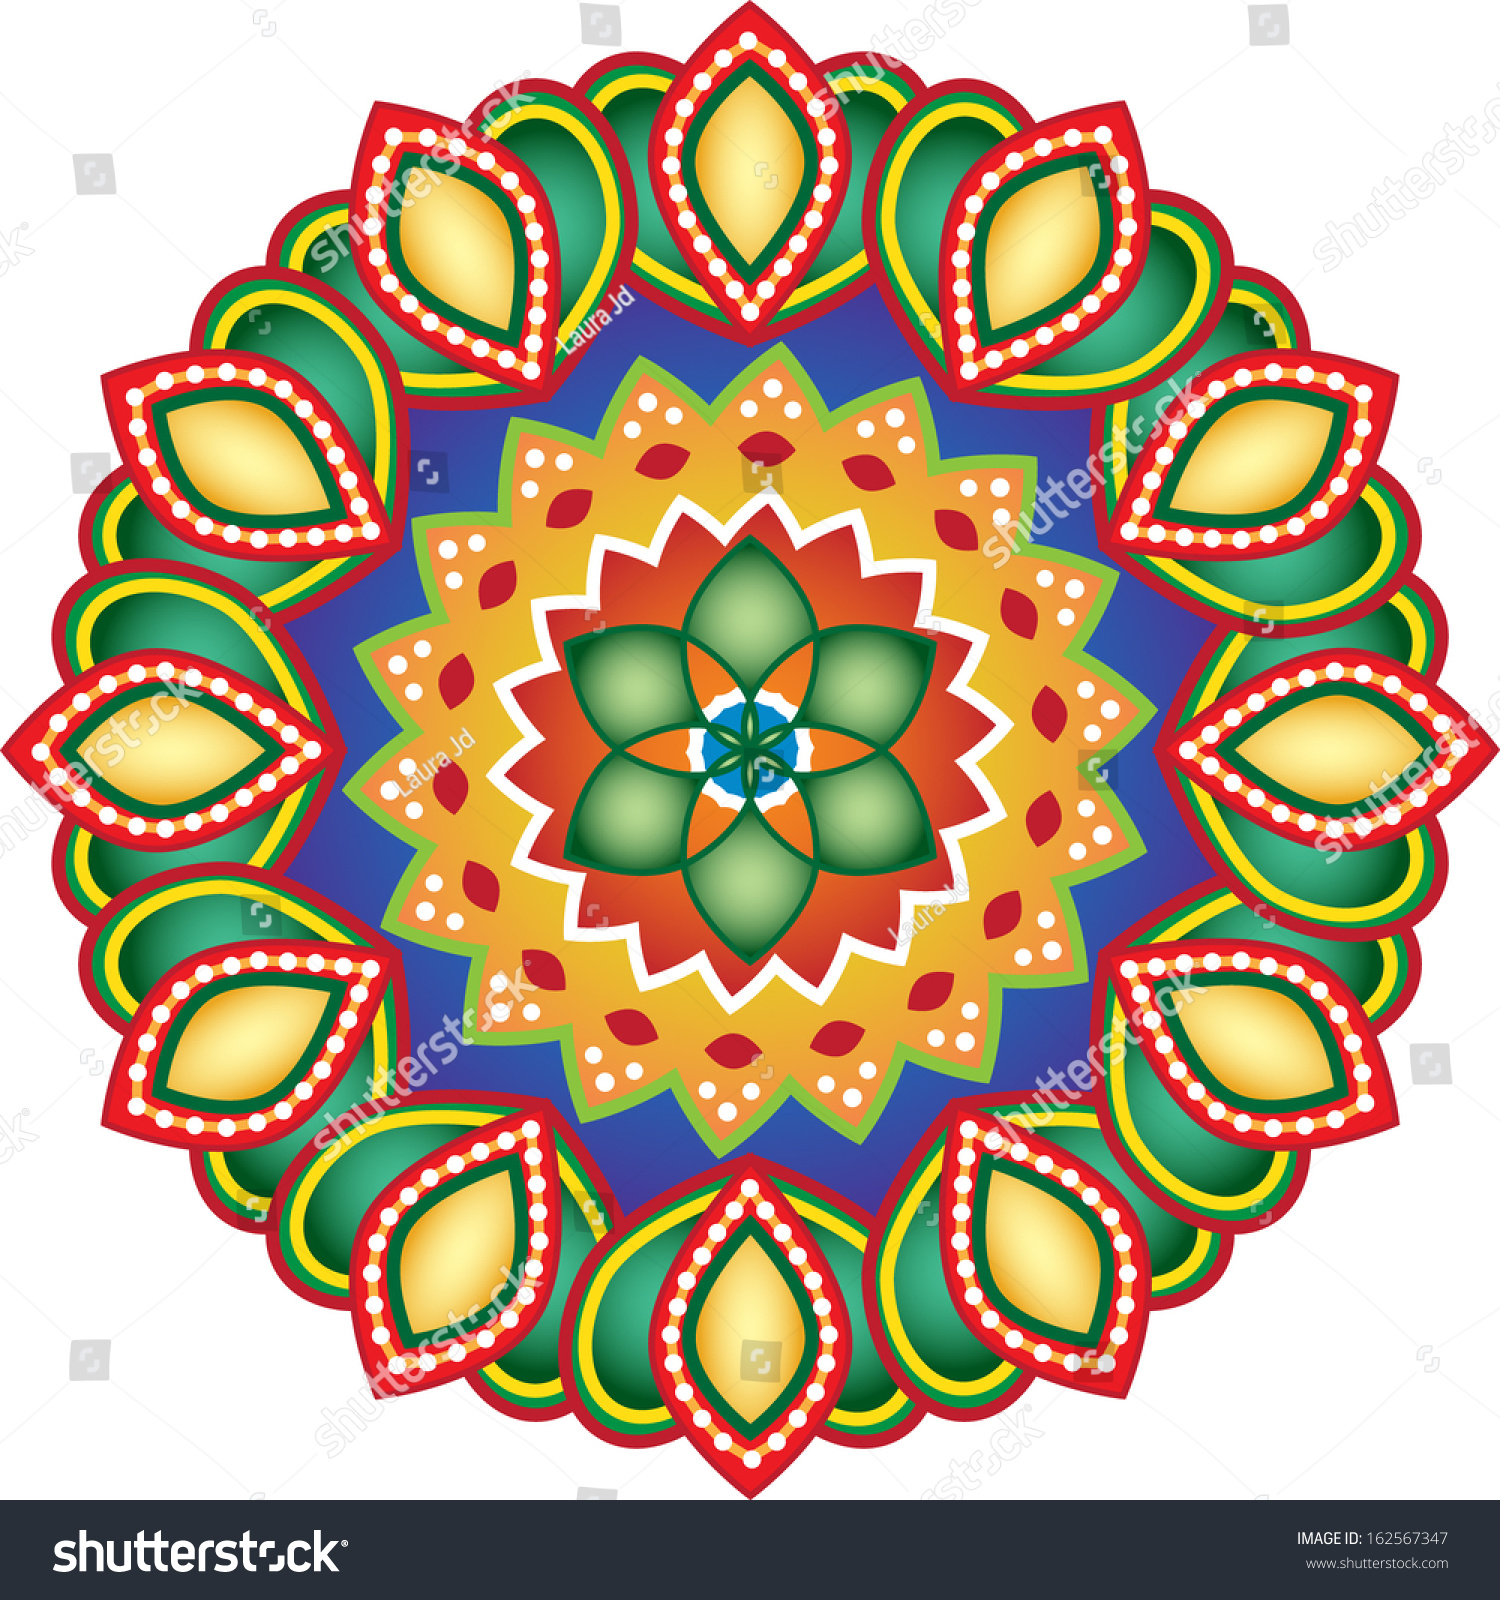 rangoli design stock vector illustration 162567347